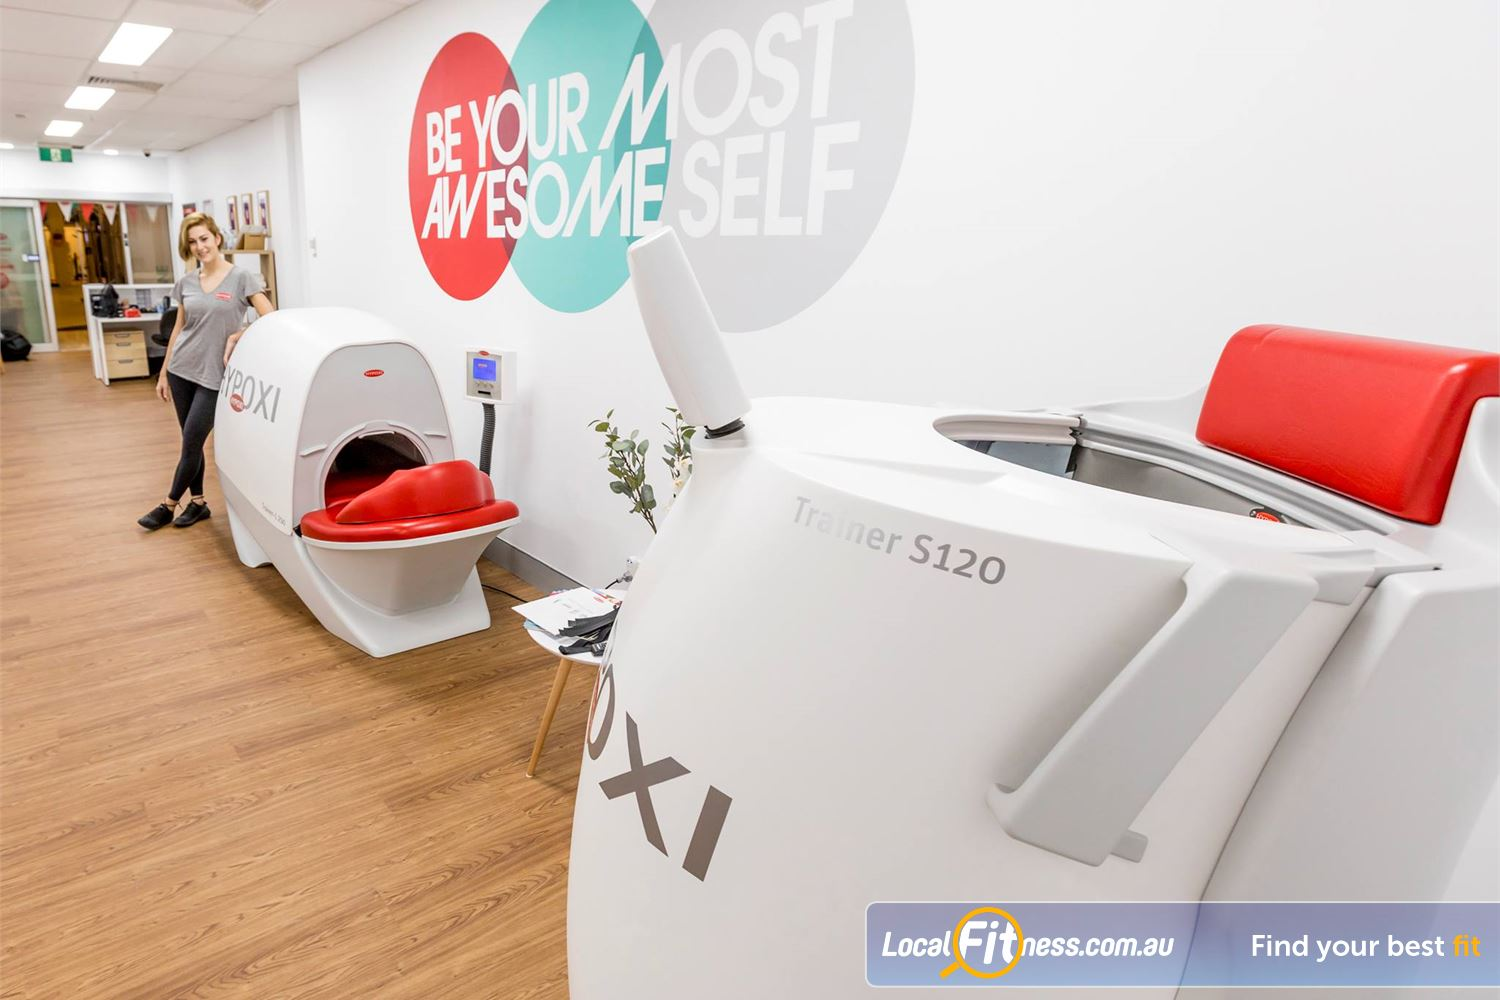 HYPOXI Weight Loss Near Beaumaris Our HYPOXI machine works by artificially stimulating your blood supply to the fat around the stomach.